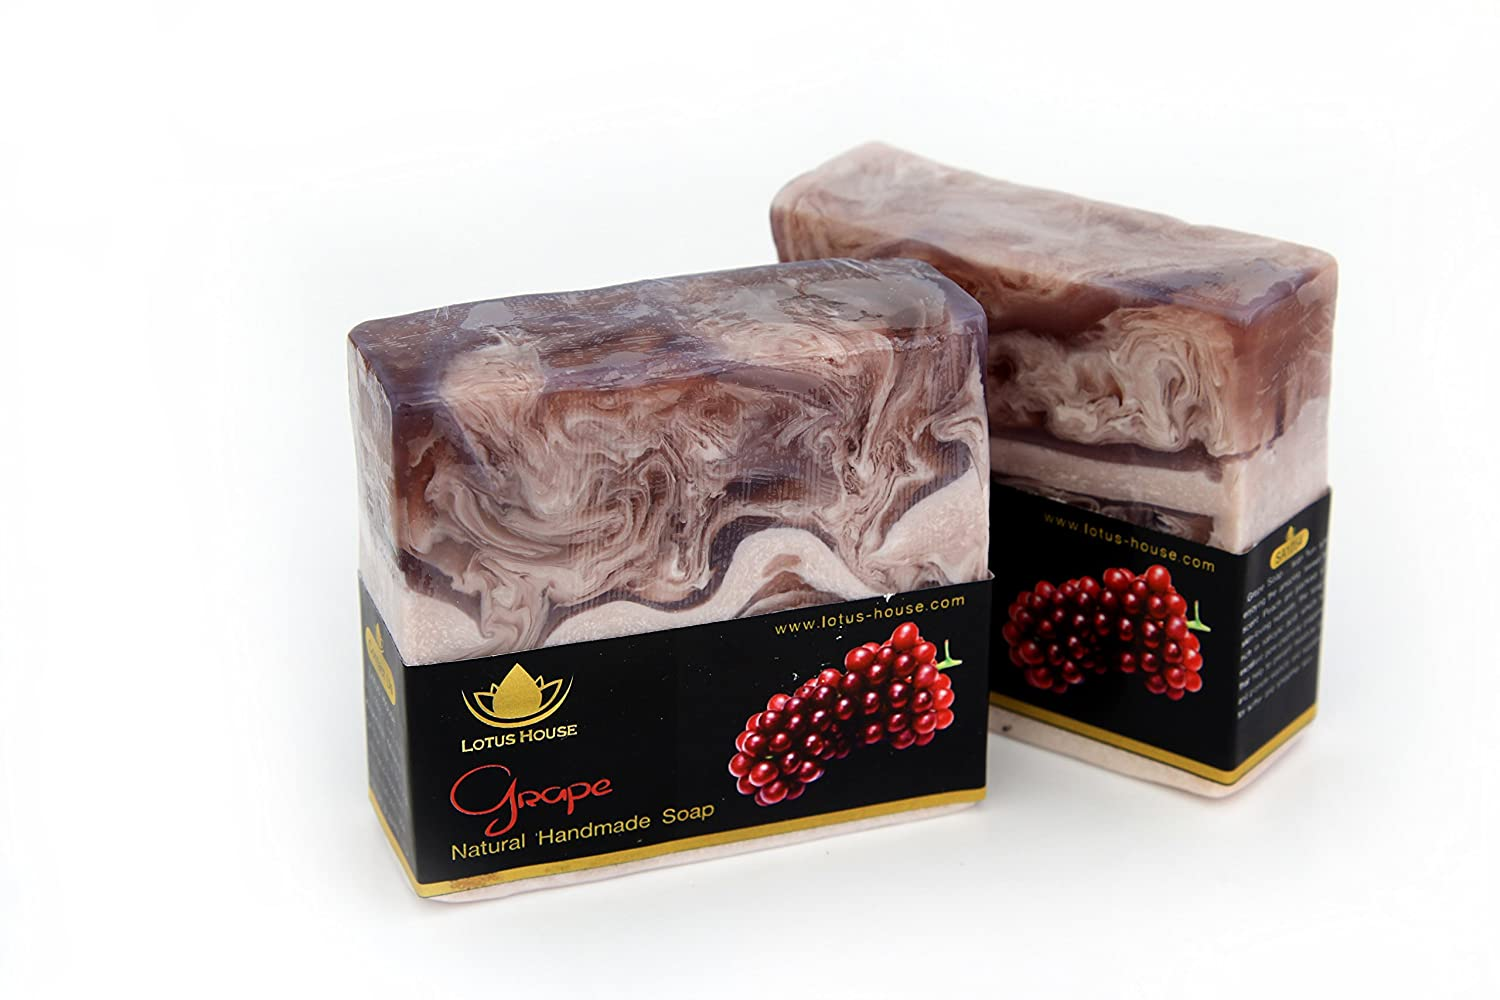 Lotus House Grape Natural Handmade Soap (300g) / 3 Bars